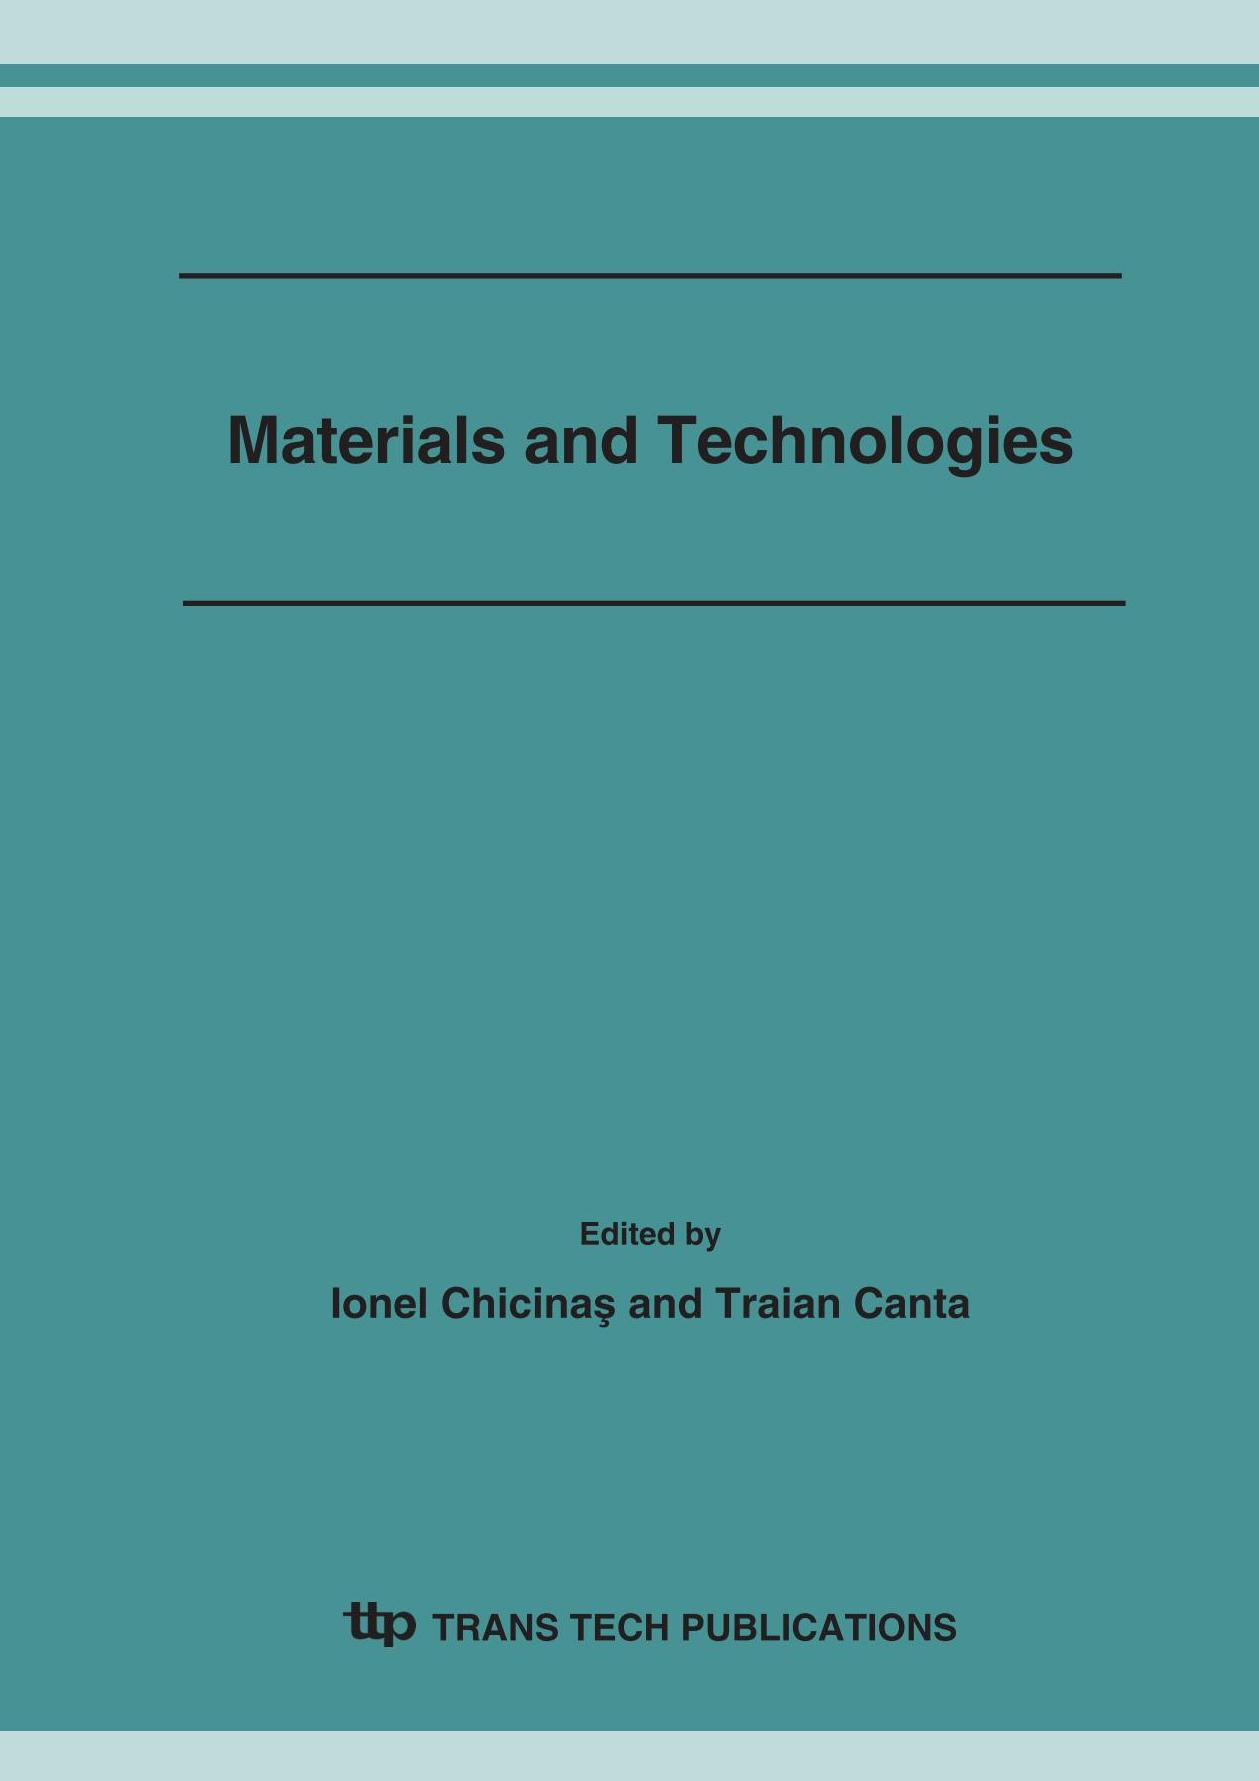 Materials and Technologies